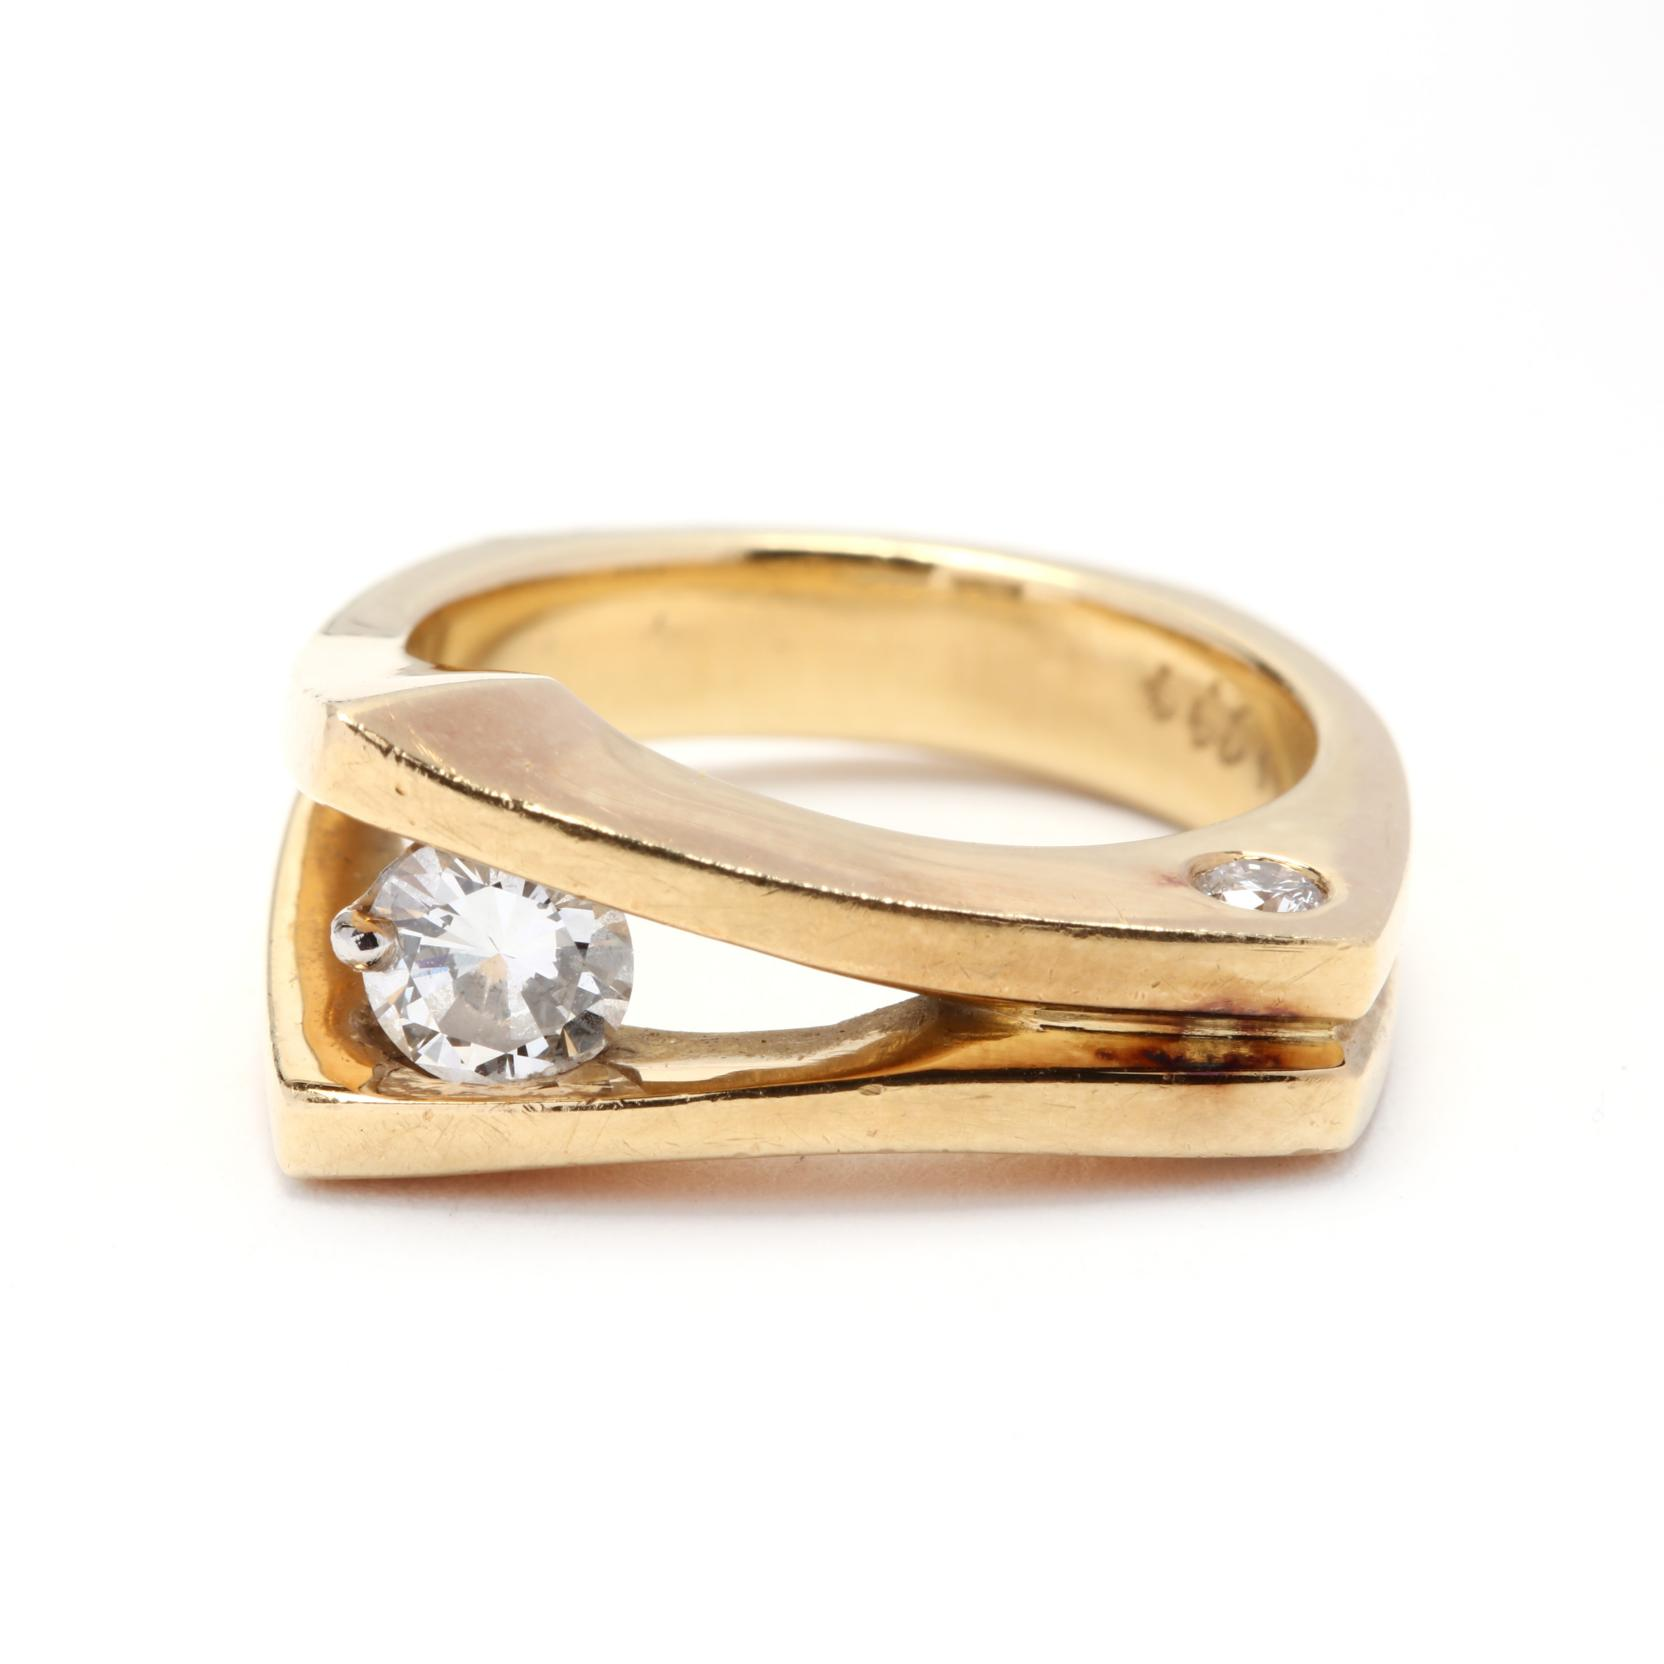 18kt-gold-and-diamond-ring-peter-indorf